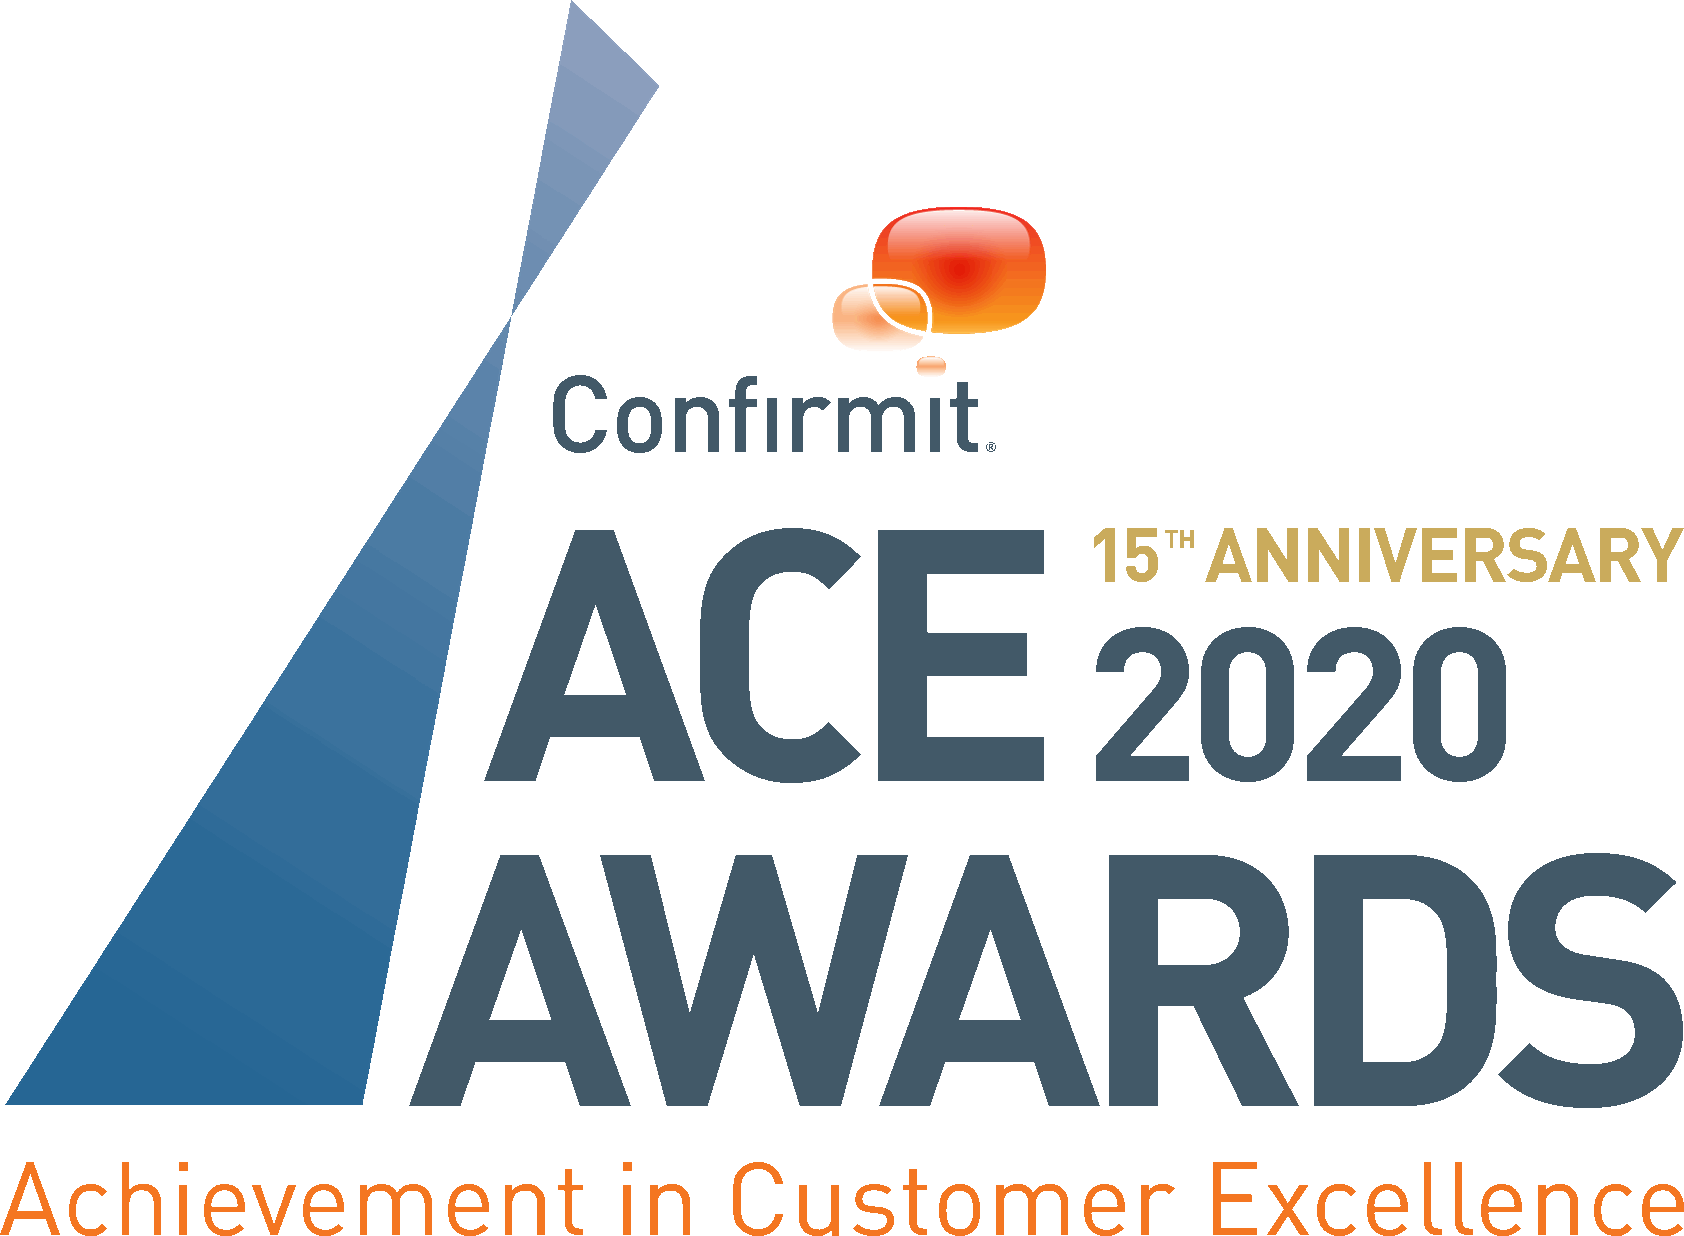 We're celebrating the 15th anniversary of the ACE Awards this year.